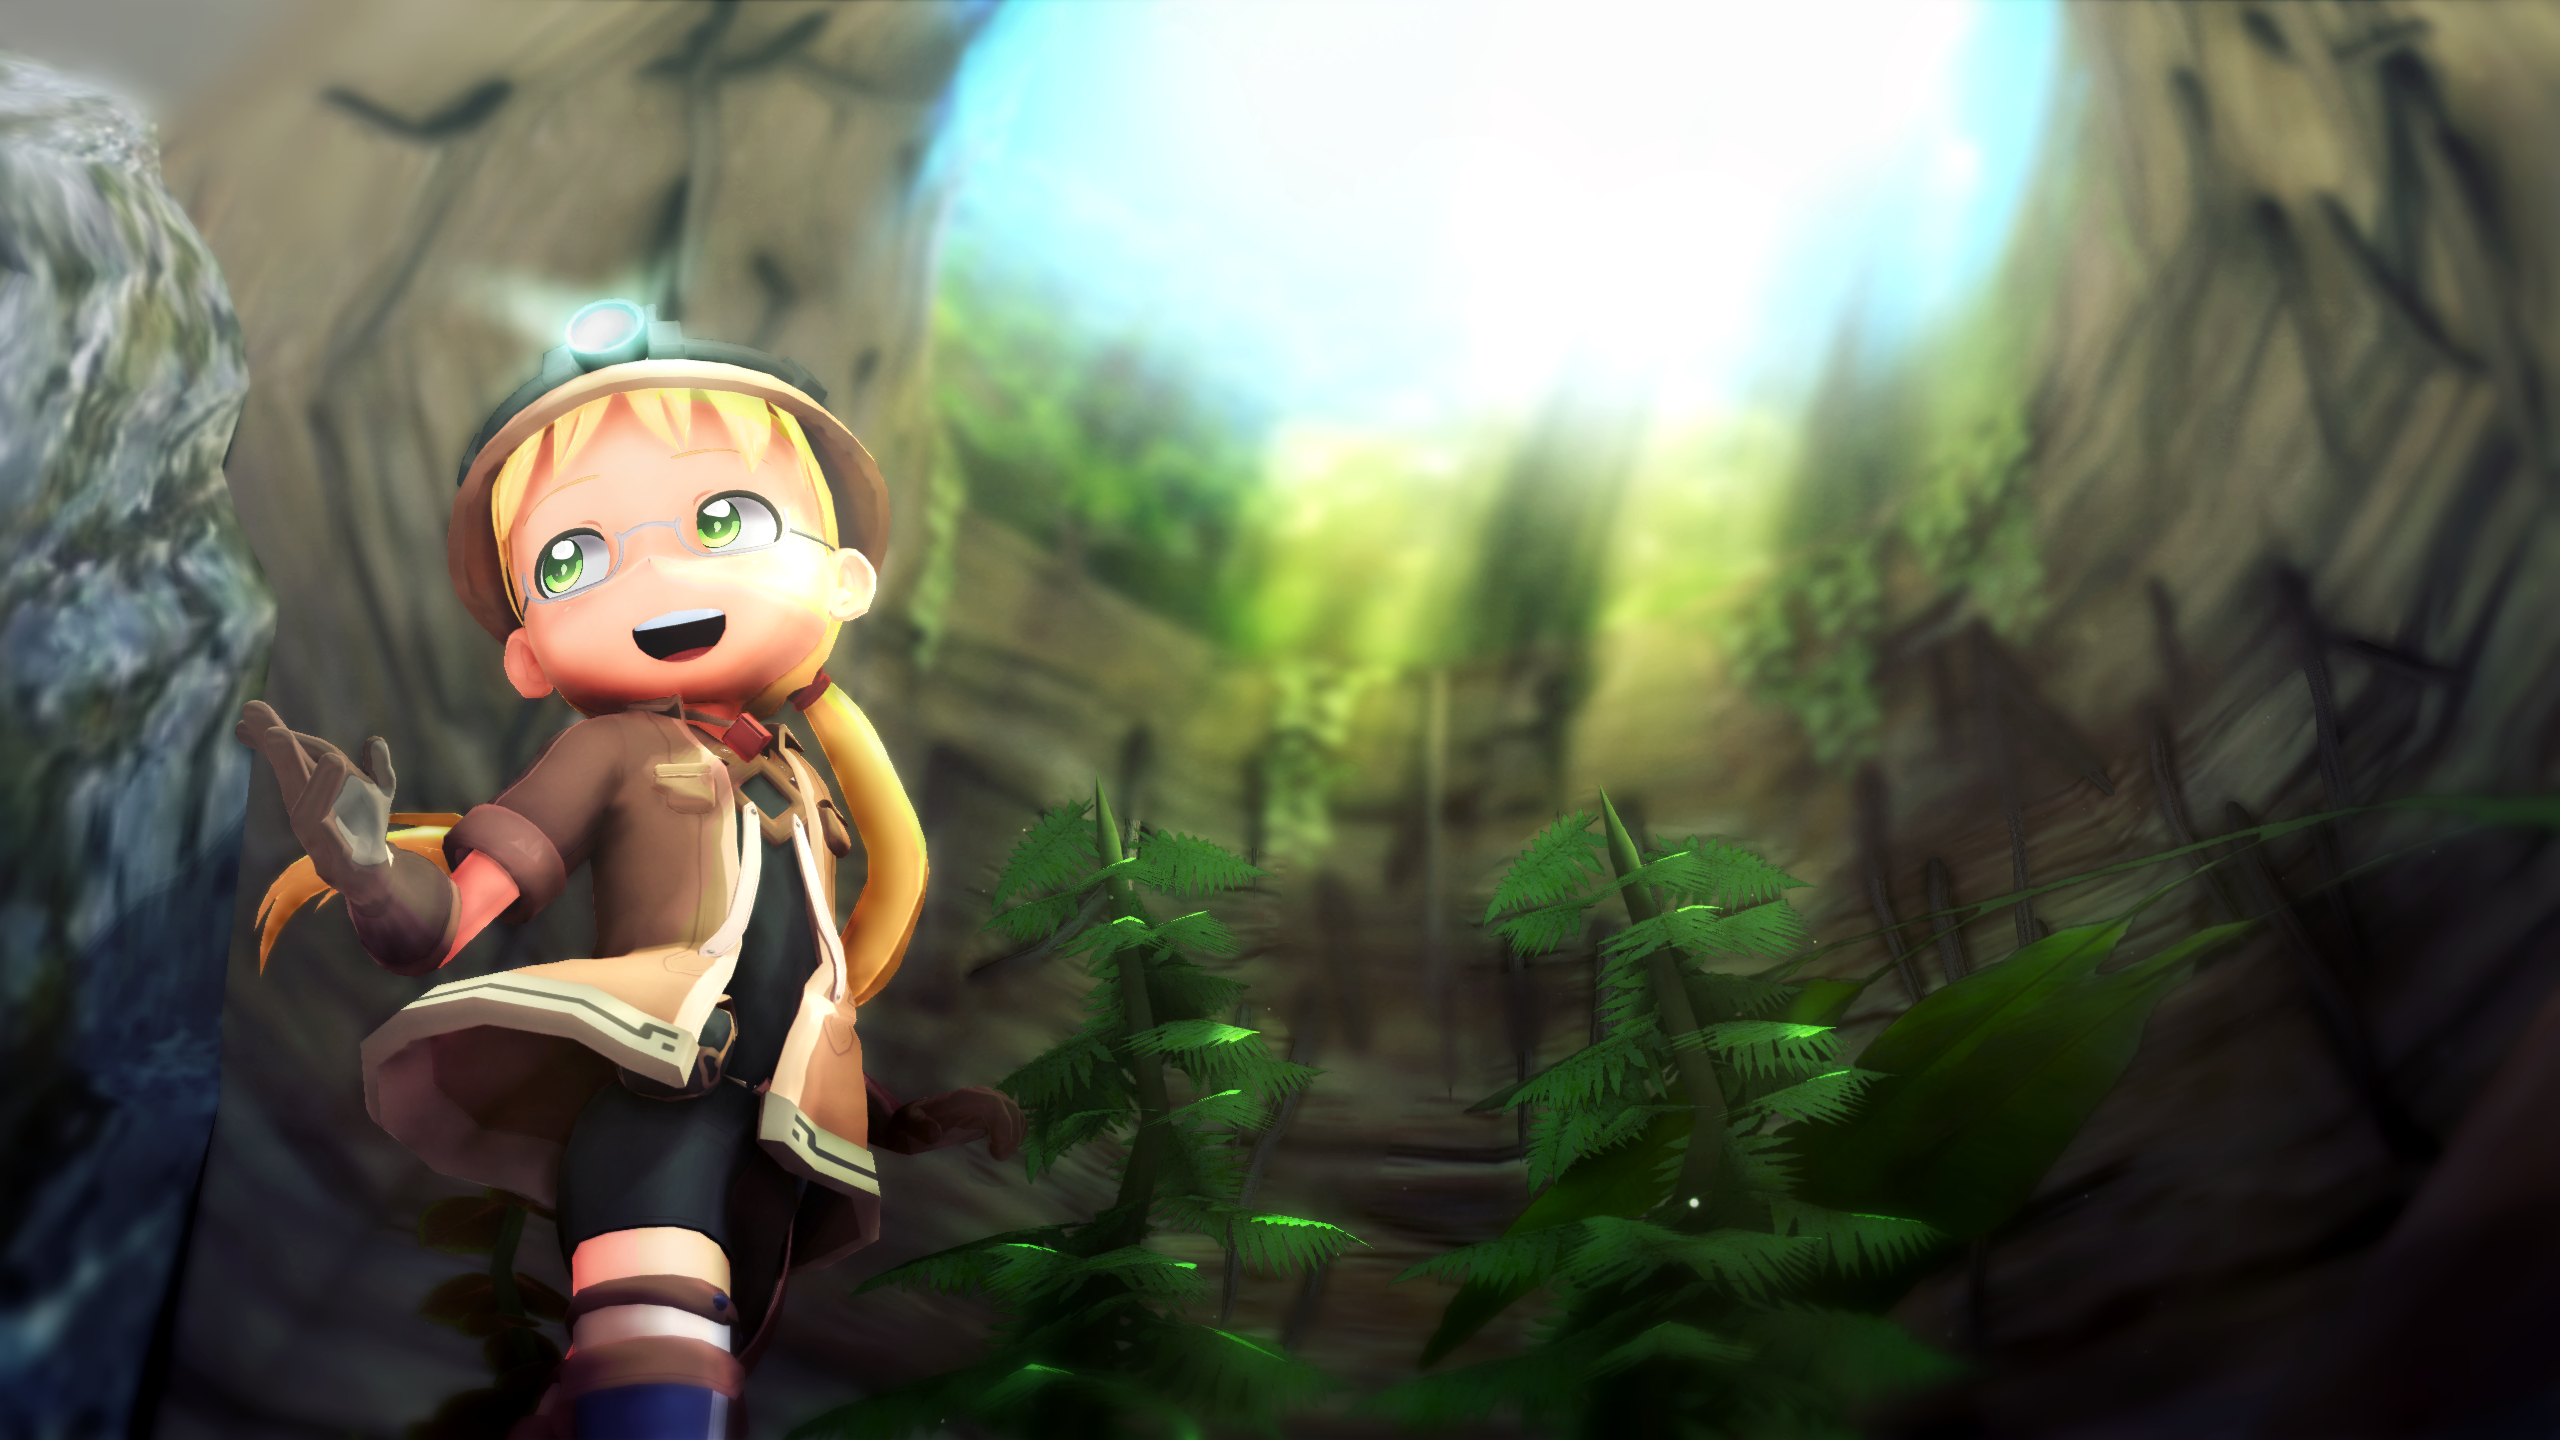 Made in Abyss by MagicalPouchOfMagic on DeviantArt